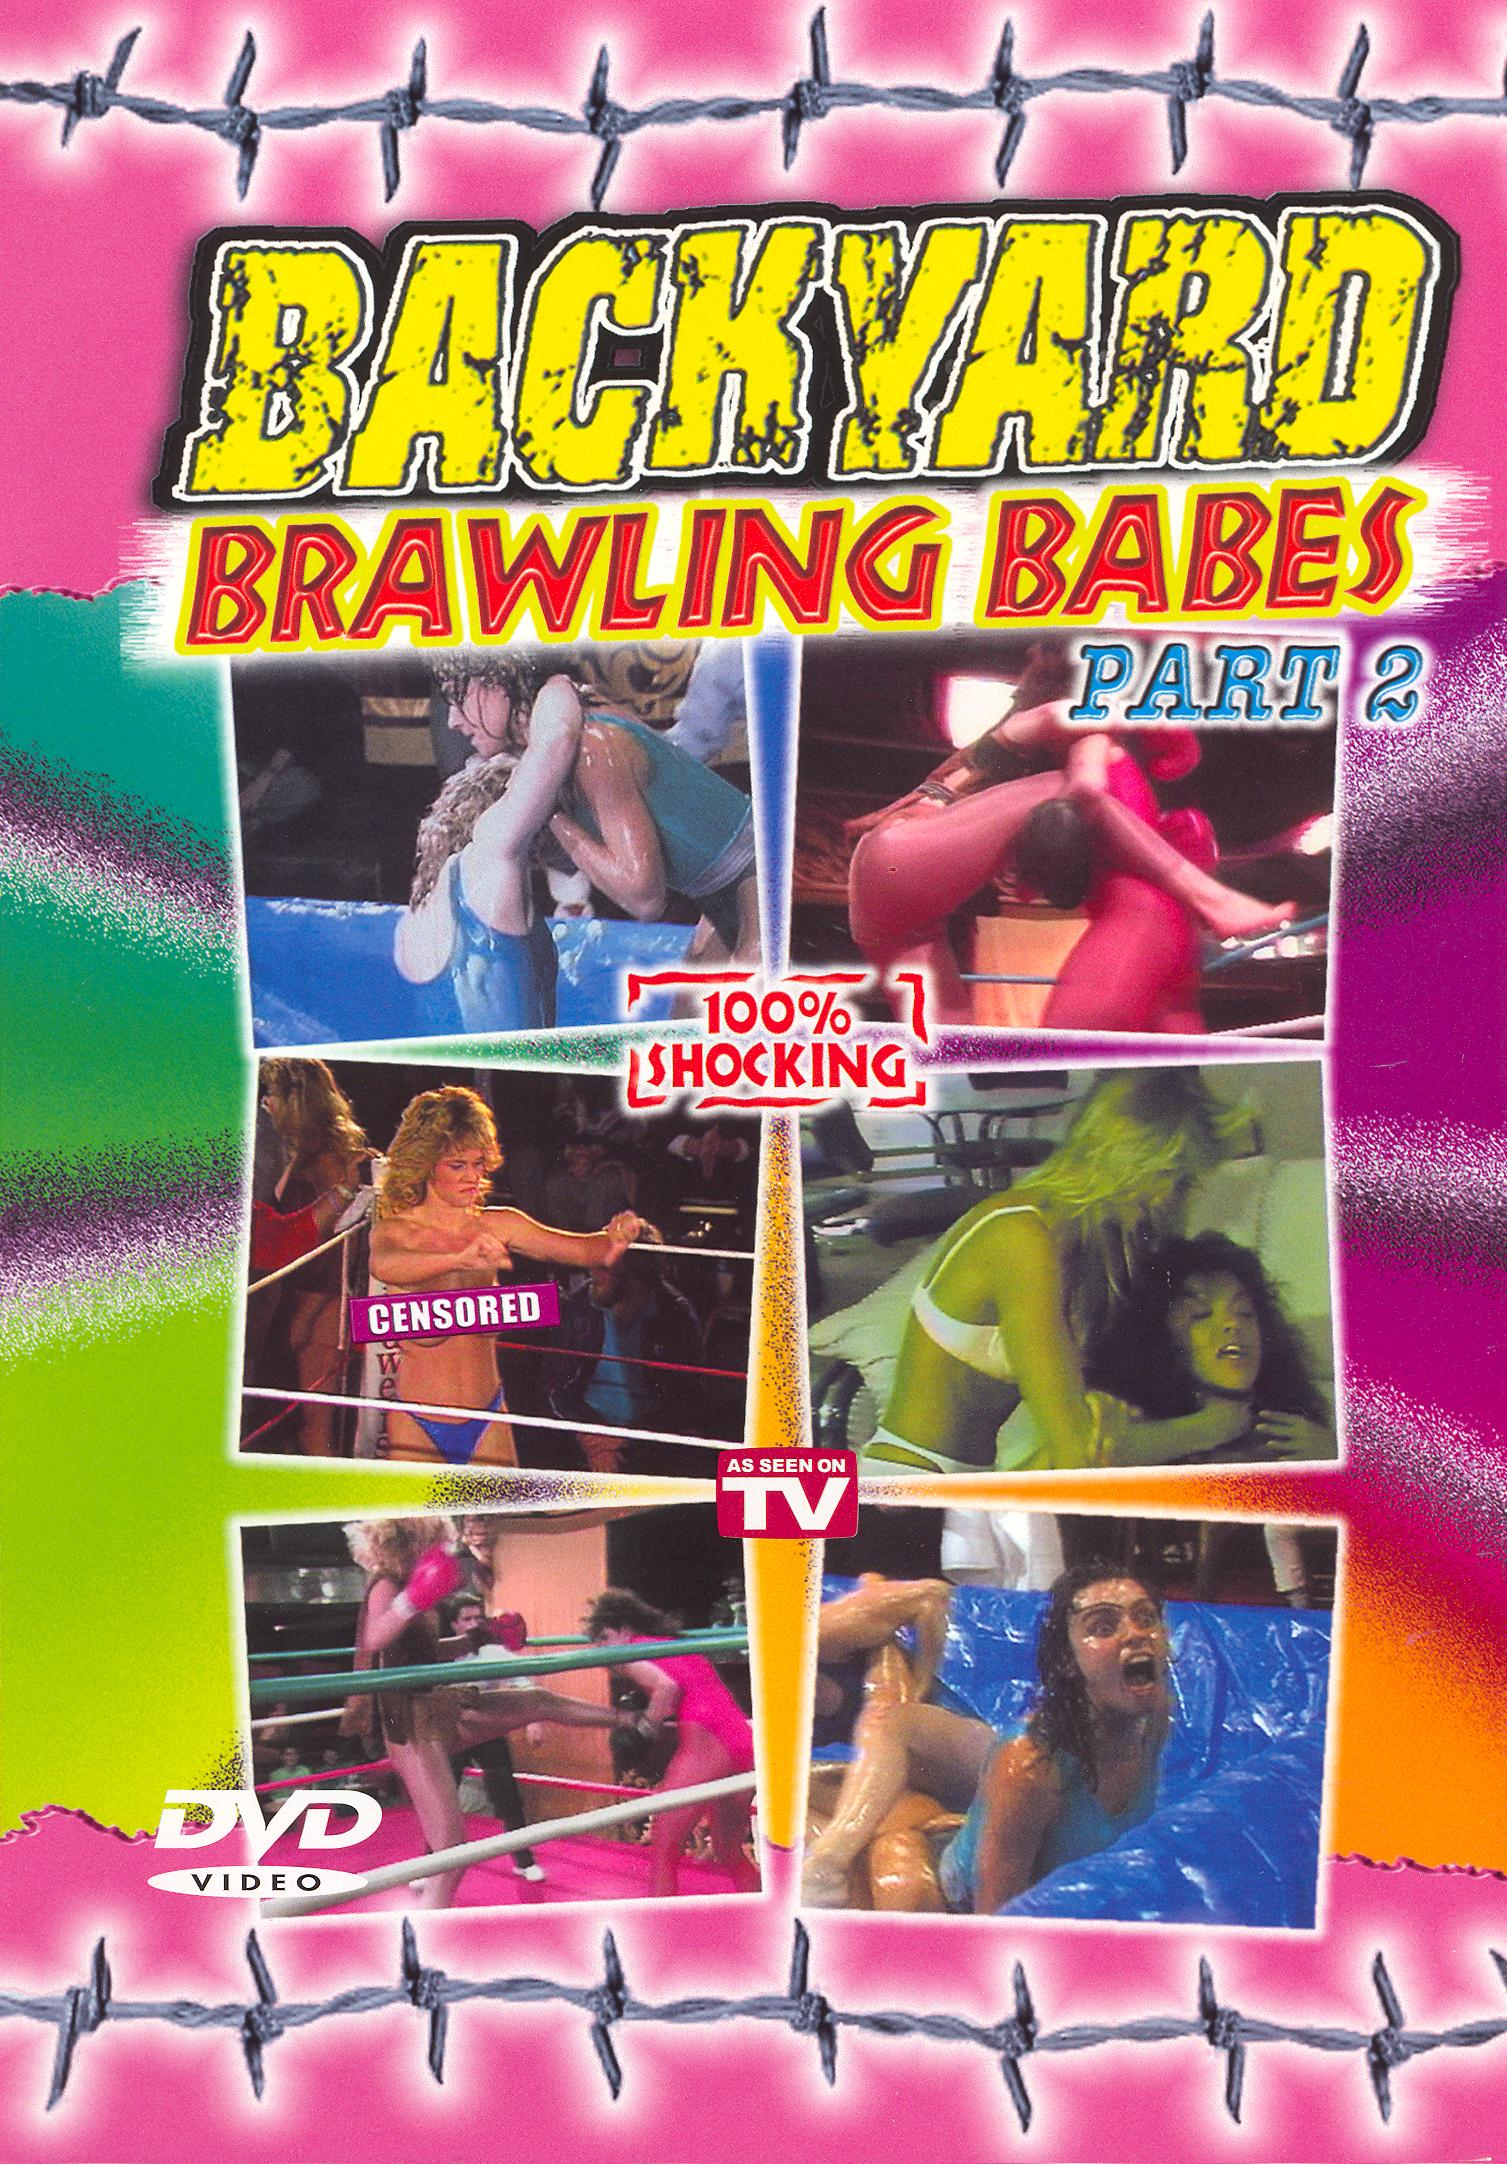 Backyard Brawling Babes, Vol. 2